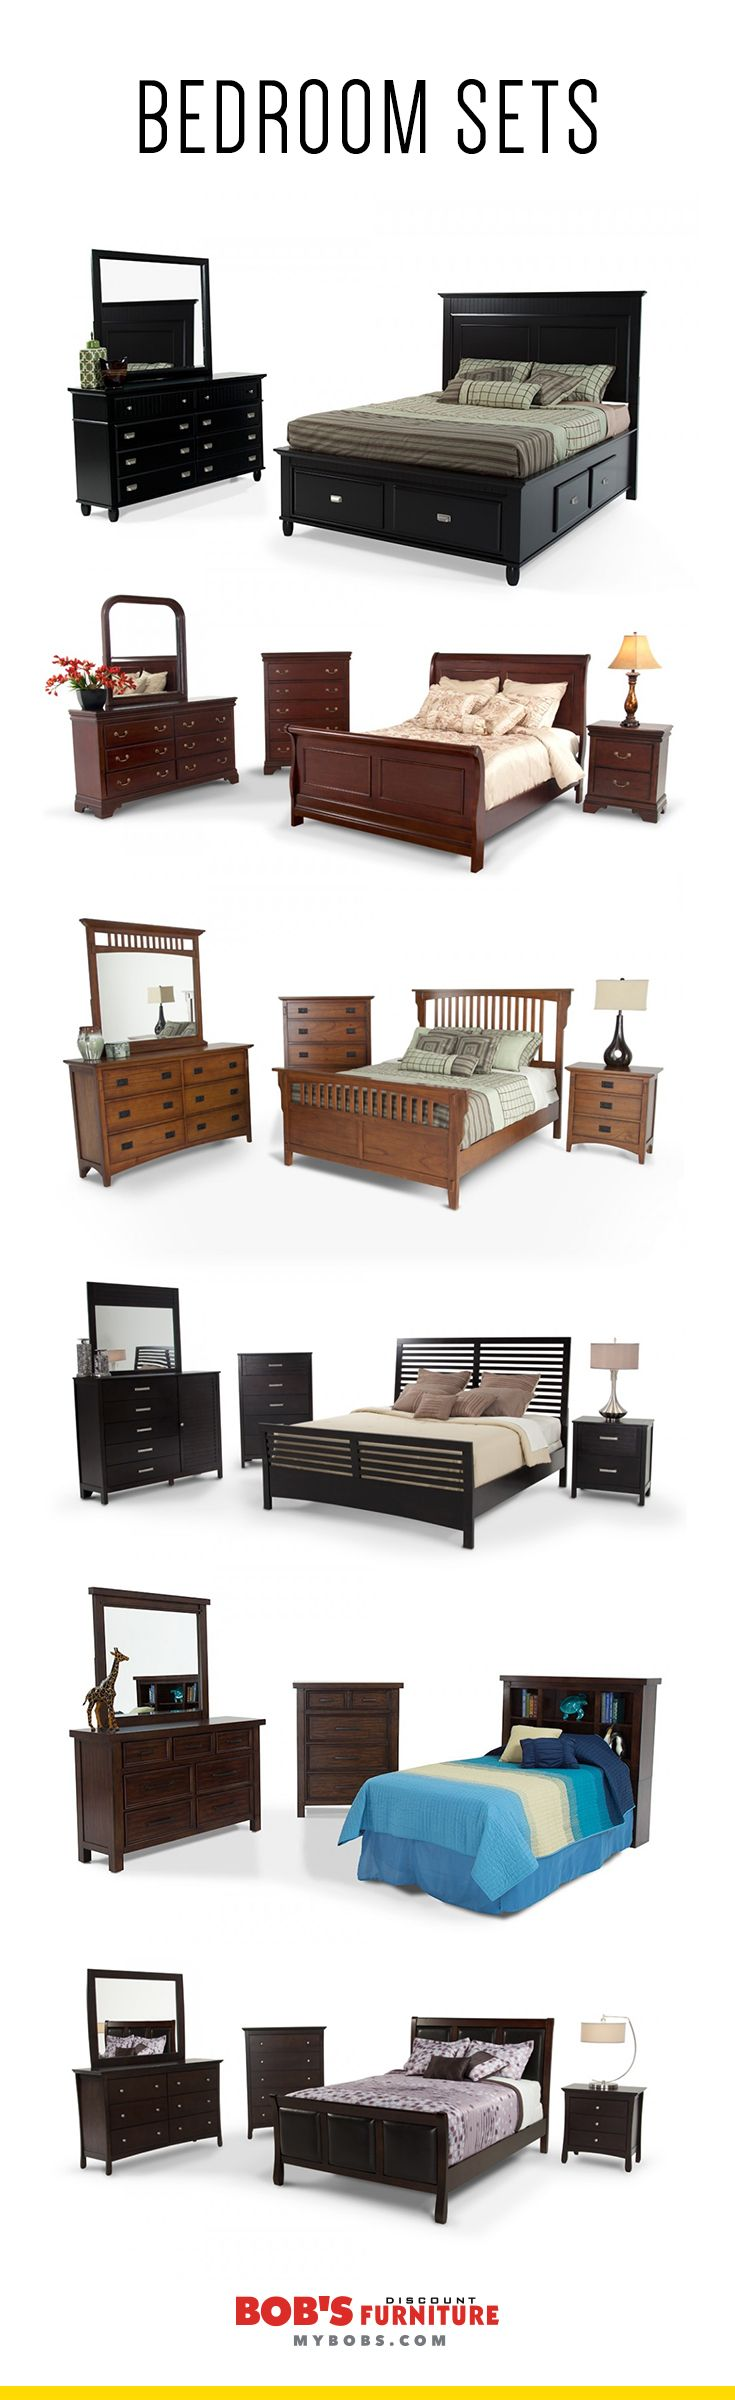 Sixteen different 8-piece #bedroom sets, only $999 each! Super stylish and an untouchable value, only at My Bob's!